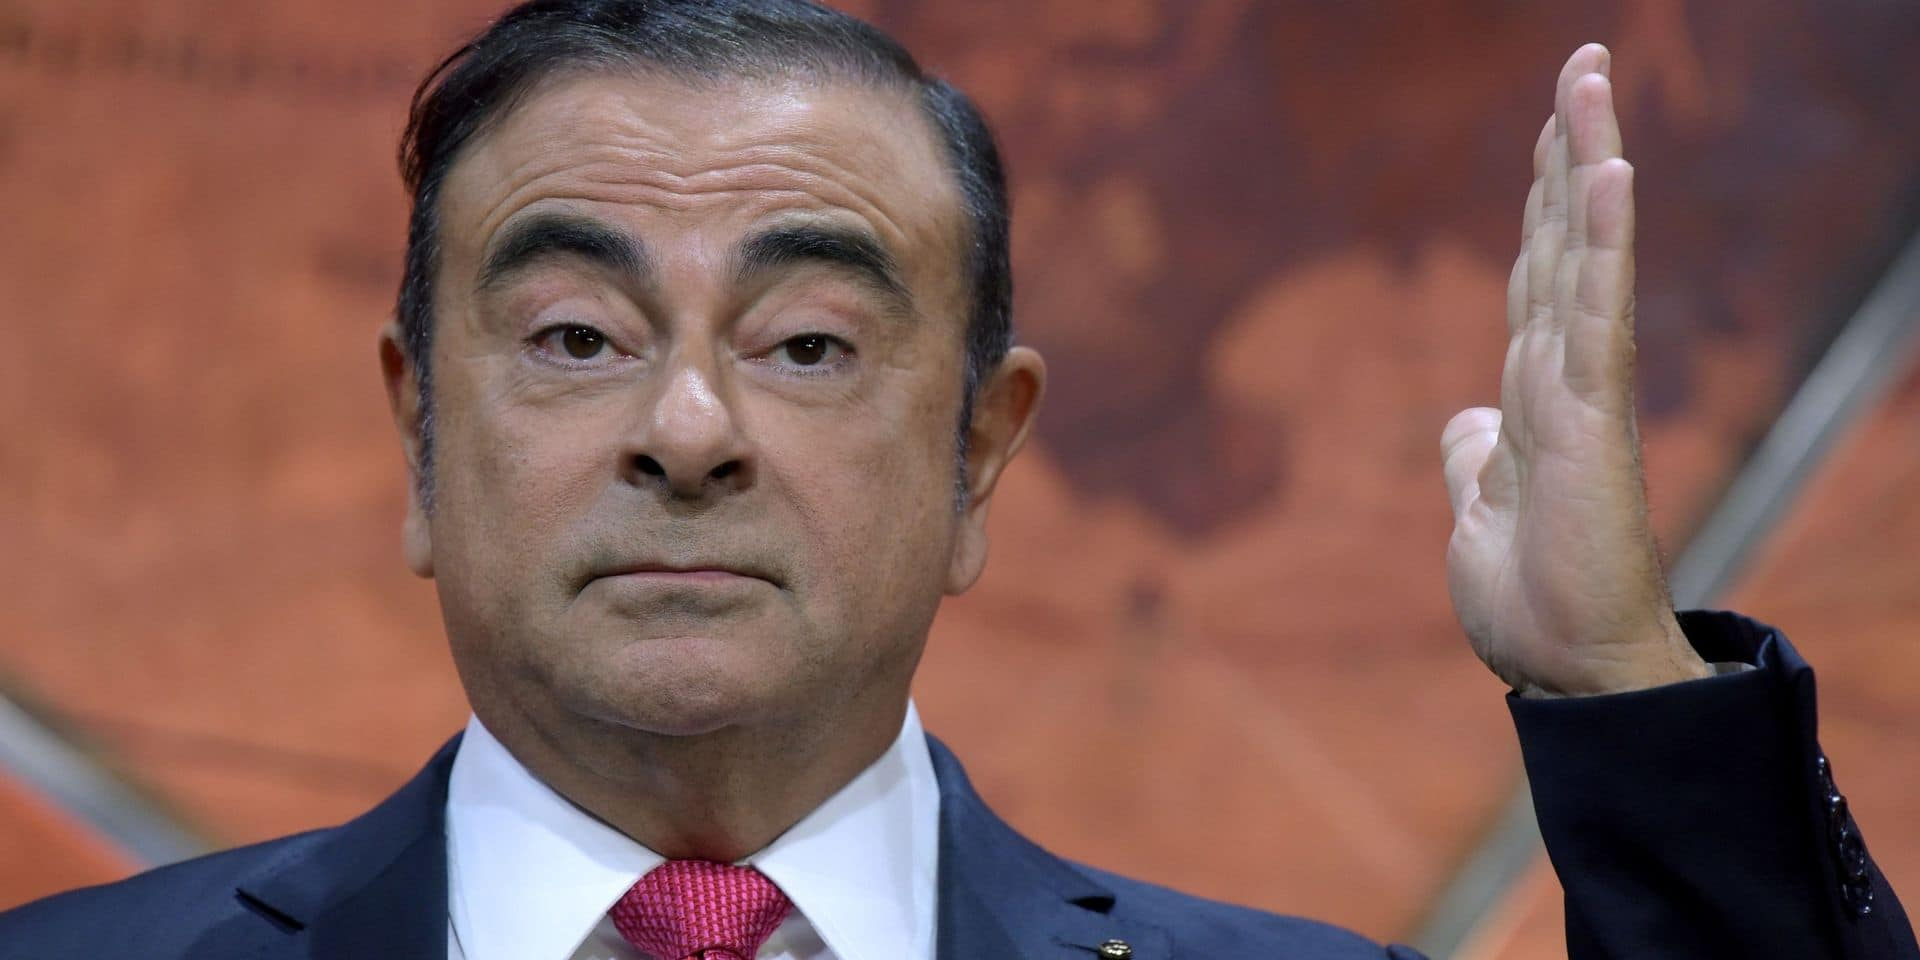 Carlos Ghosn, l'incroyable fuite de l'ex-patron de l'automobile